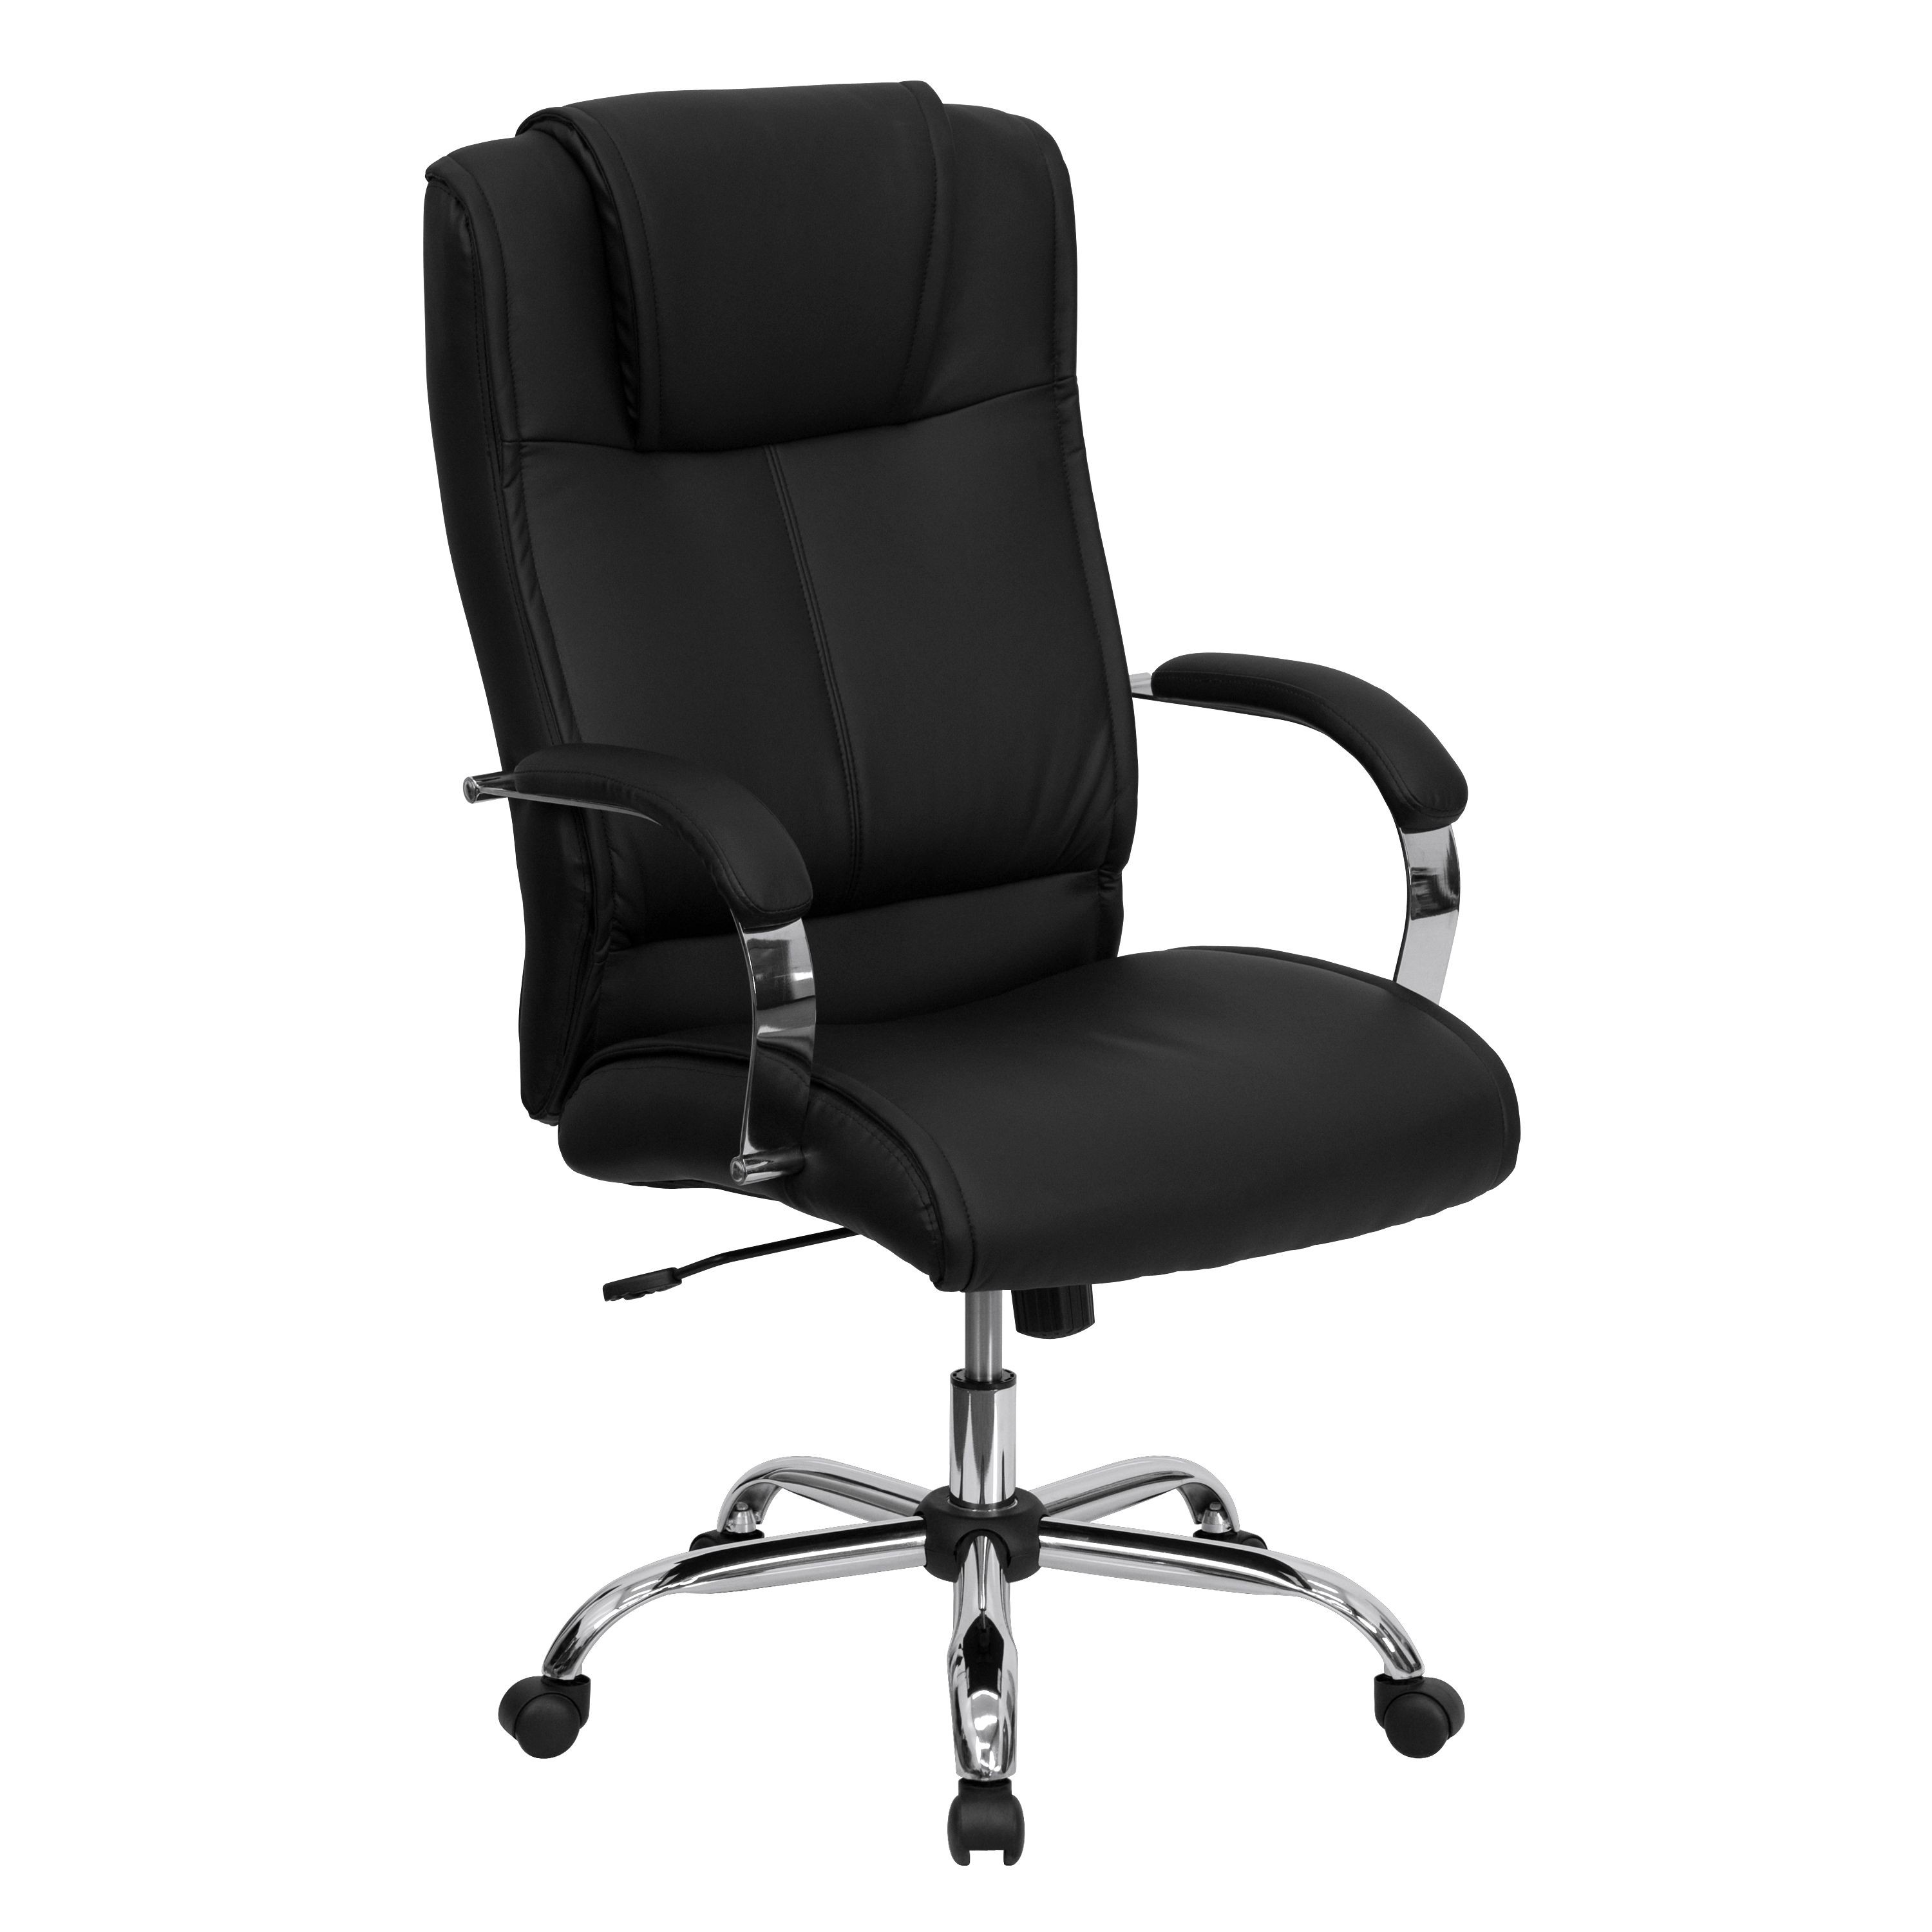 Black Leather High-Back Executive Office Chair